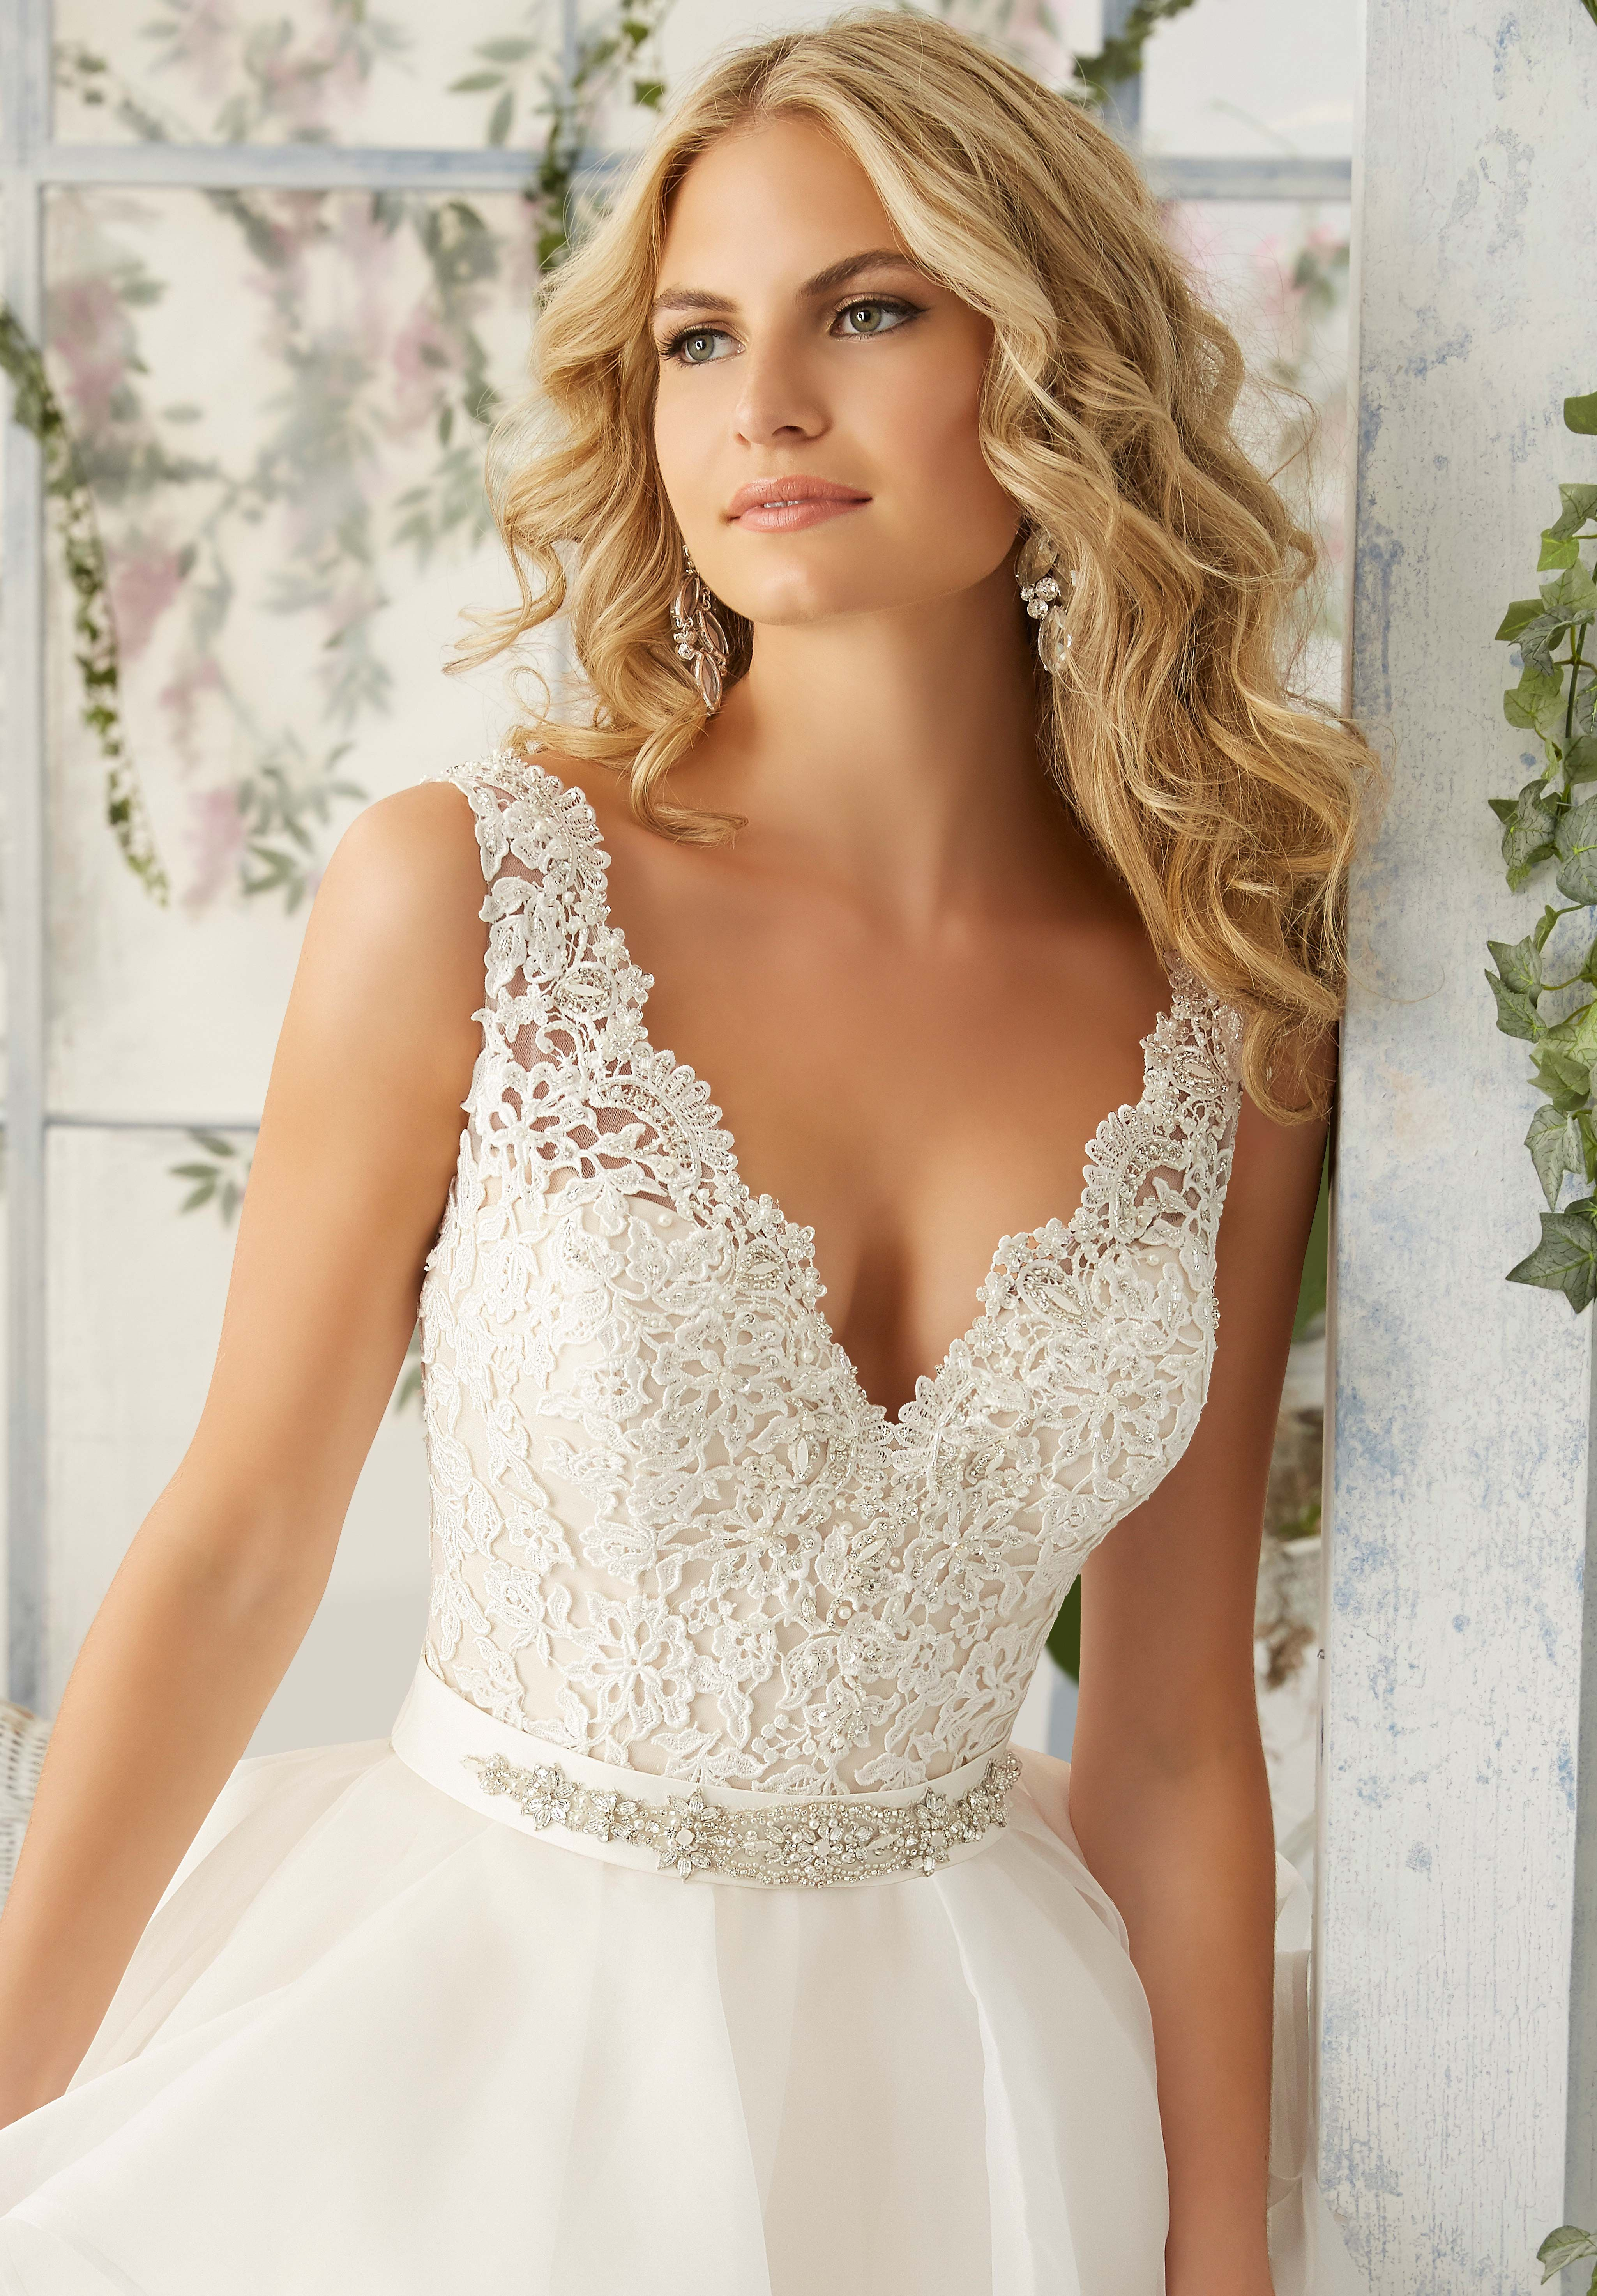 Richly beaded satin belt wedding dresses pinterest tops richly beaded satin belt is a wonderful accent piece to your wedding dress colors available white ivory and blush sizes available s m l ombrellifo Gallery